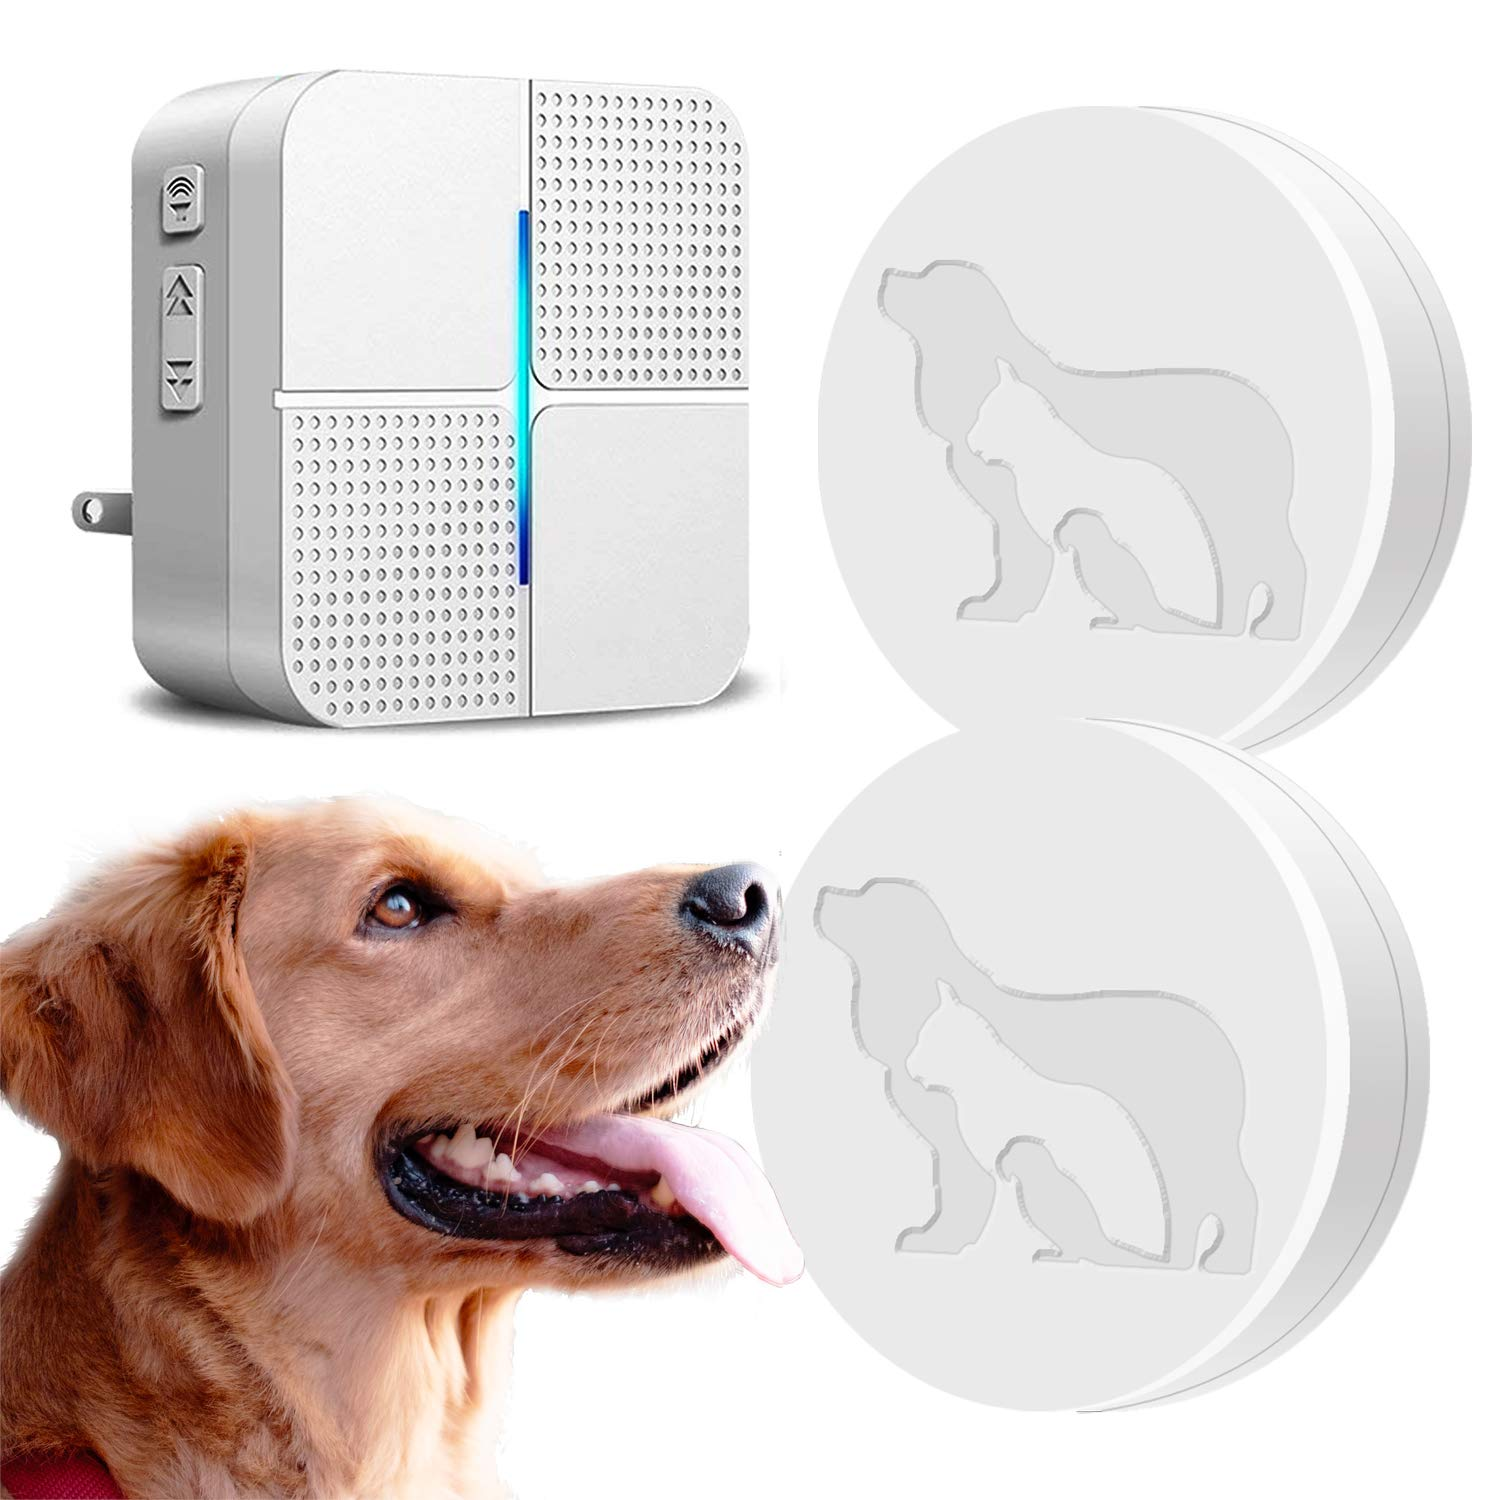 Dog Wireless Door Bell (1 Receiver & 2 Transmitters) - JOYSAE Upgrade Doggie Doorbell Chime for Potty Training with Touch Button Press Waterproof and Greater Surface Area by JOYSAE